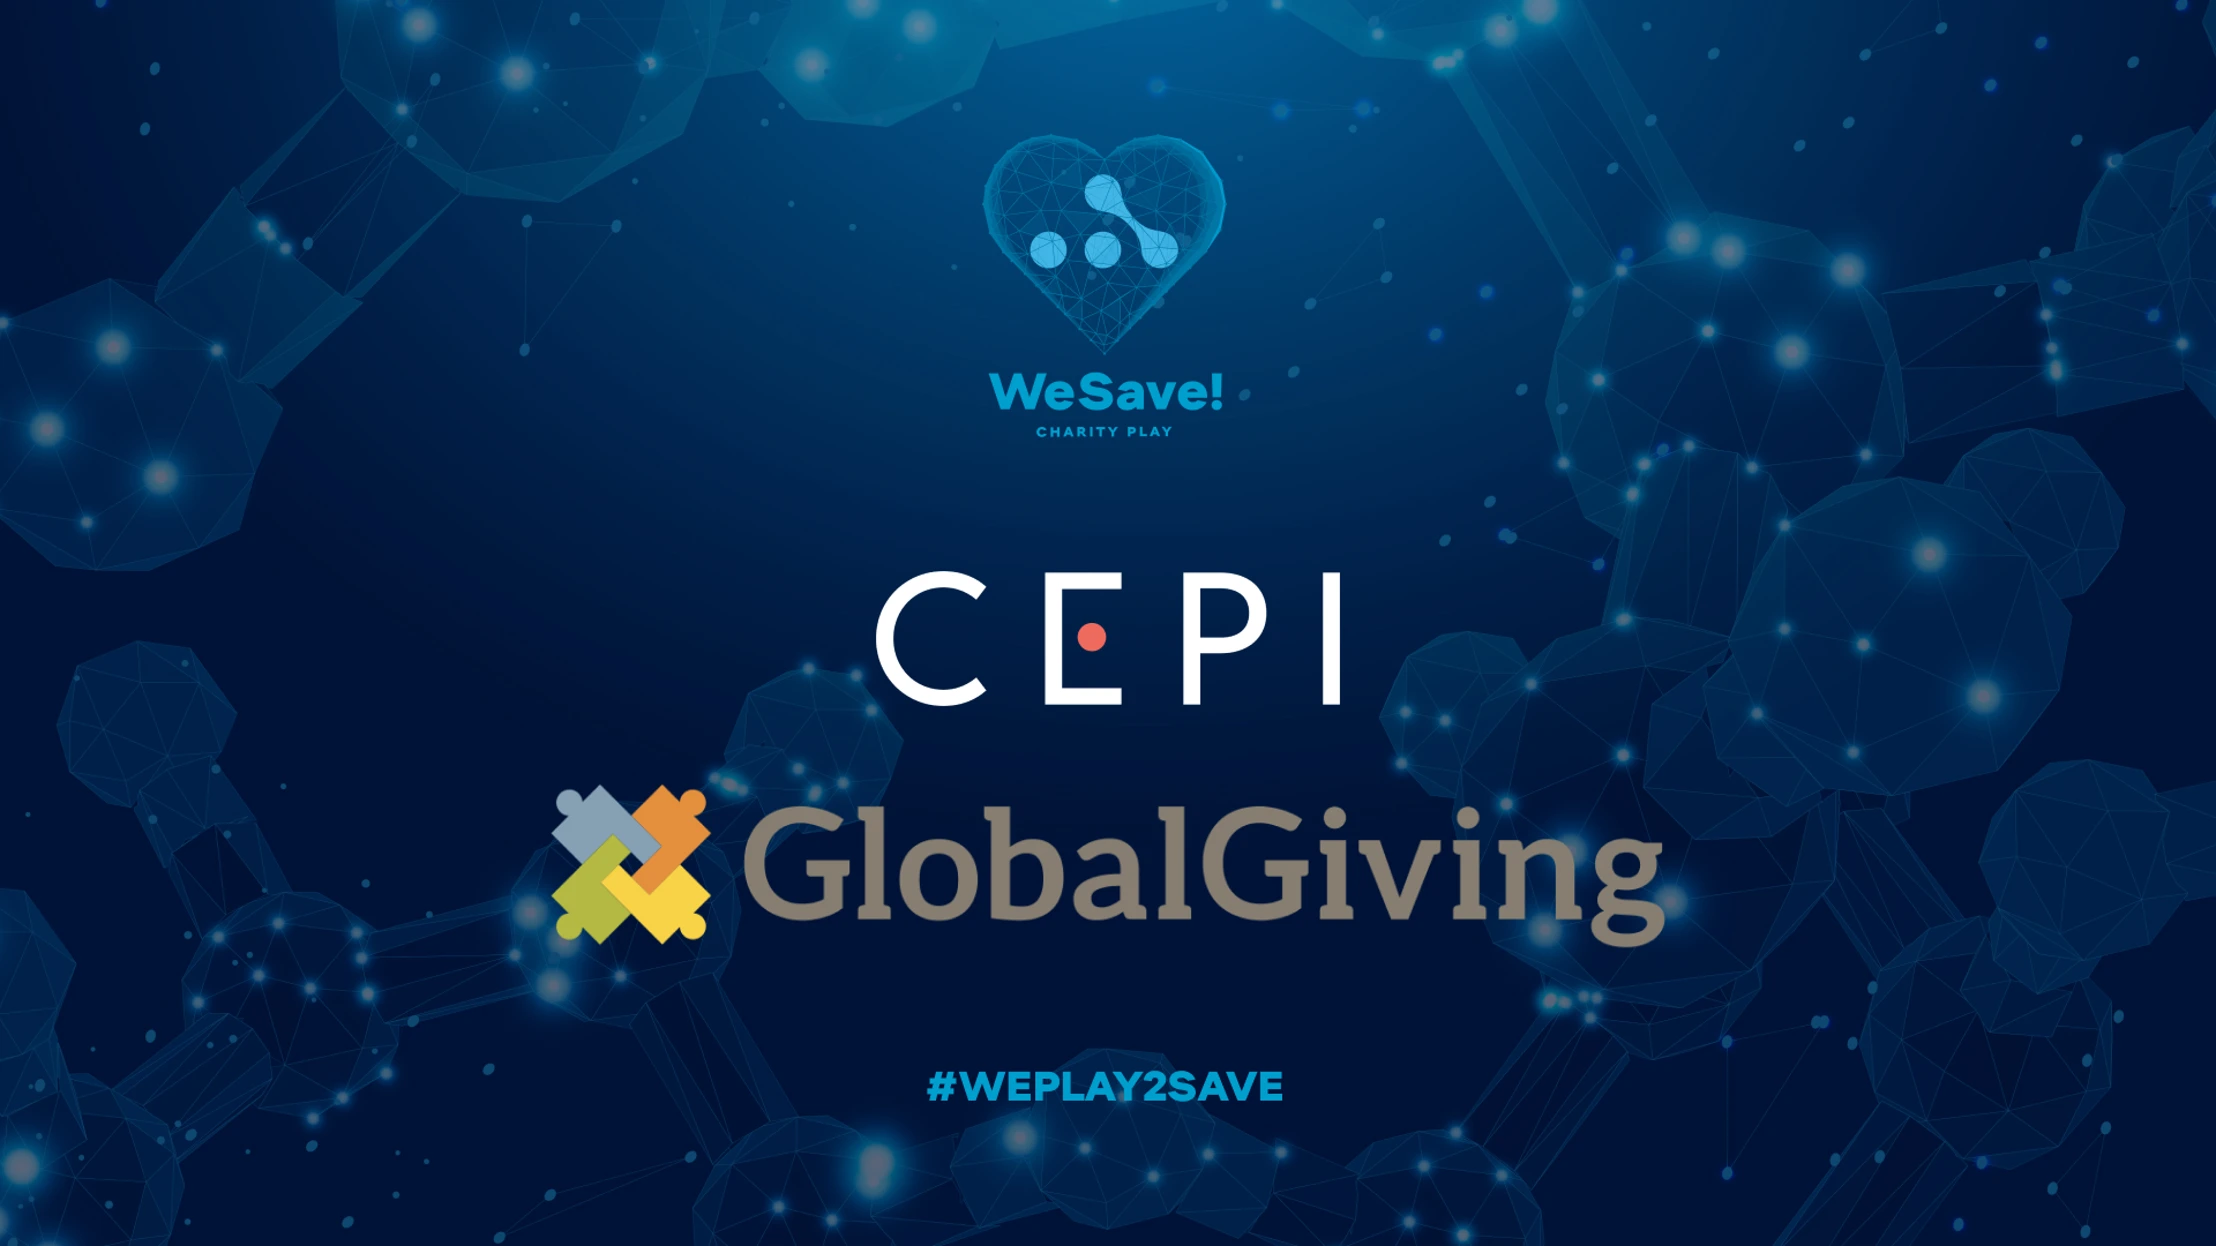 Announcing the charitable funds for WeSave! Charity Play